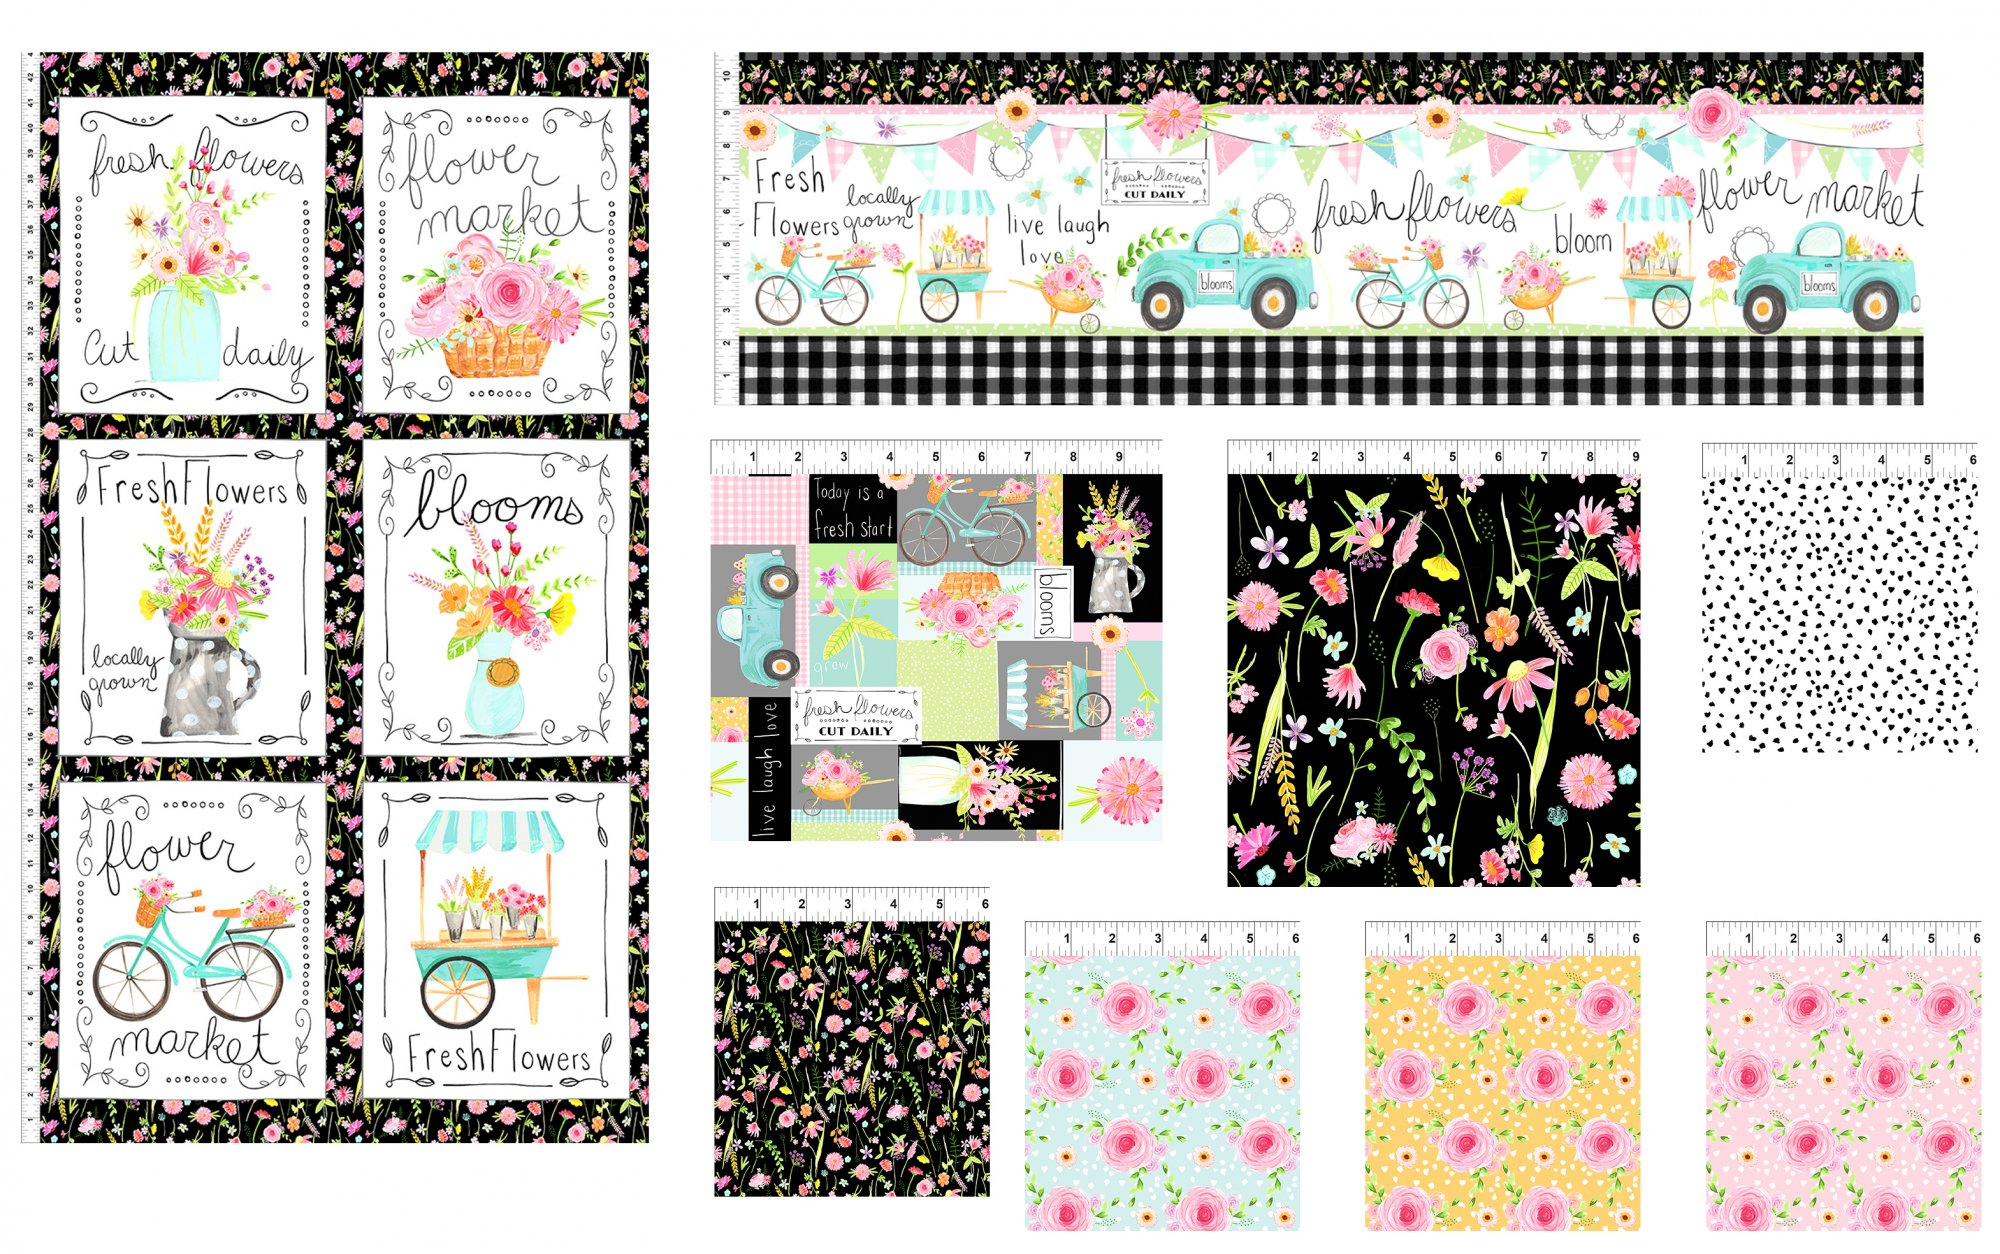 Flower Market Complete 10 yd. Collection